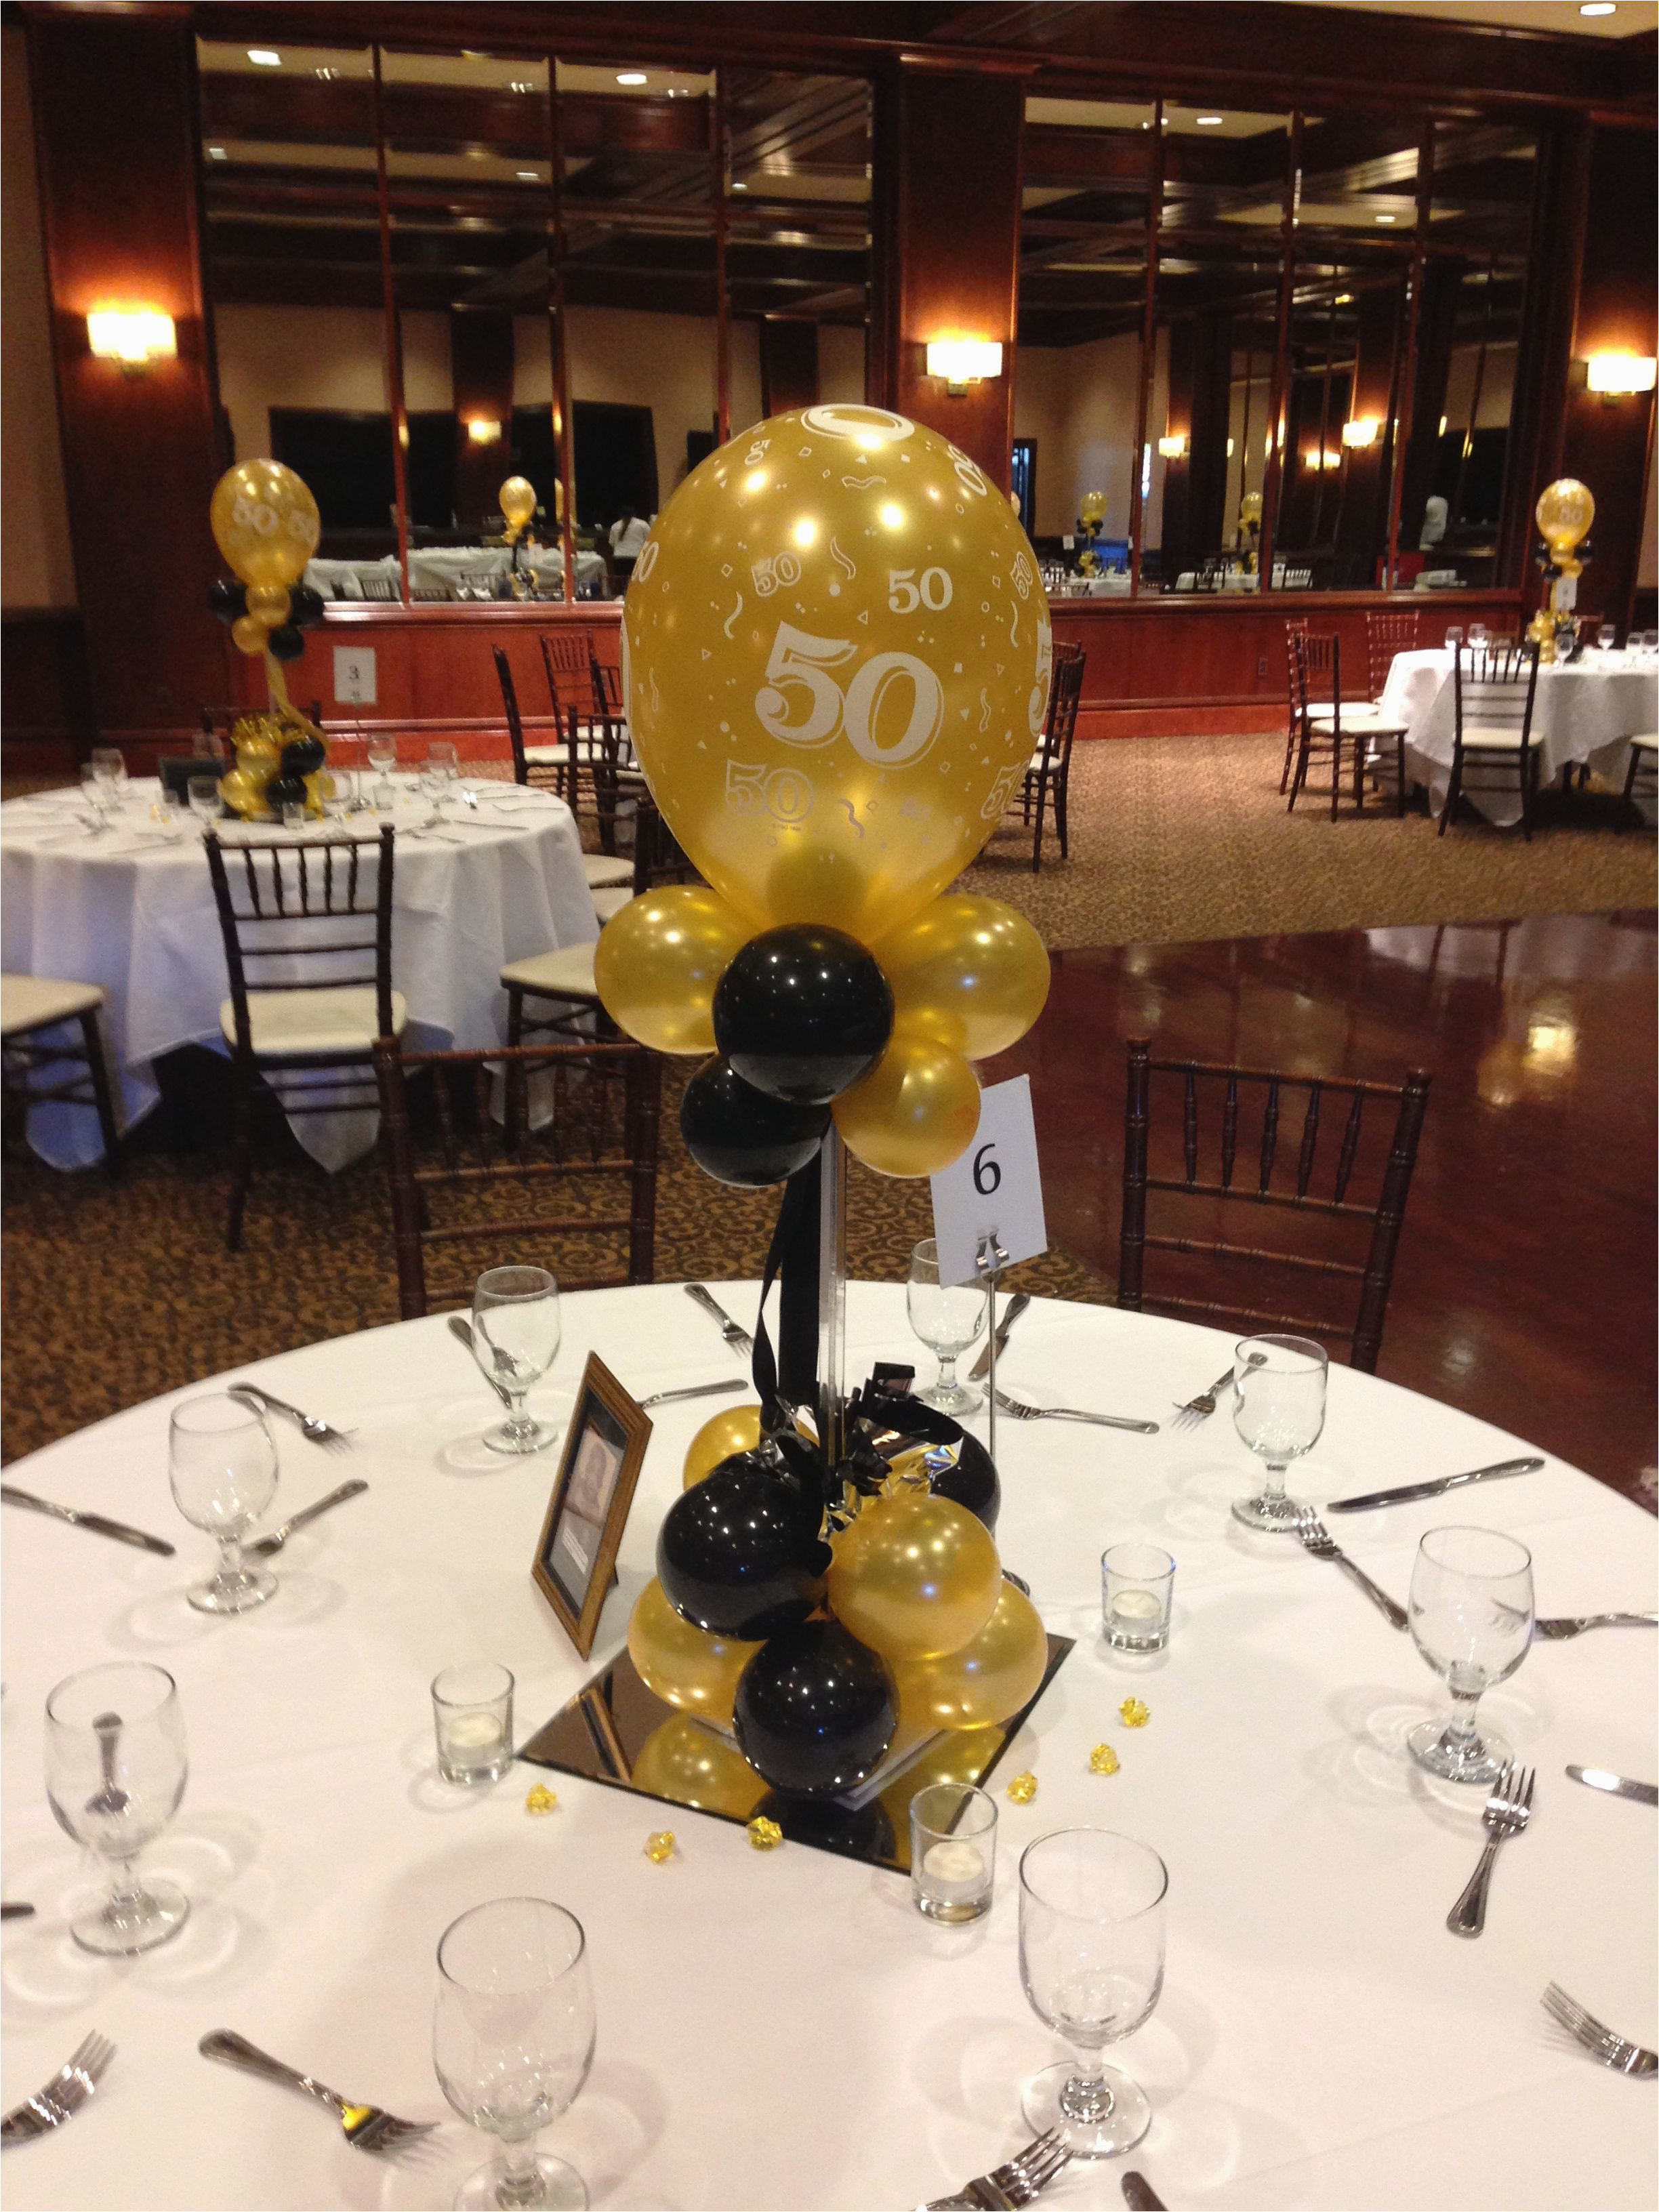 Table Decorations for 50th Birthday Party Black and Gold Balloon Centerpieces for A 50th Birthday or